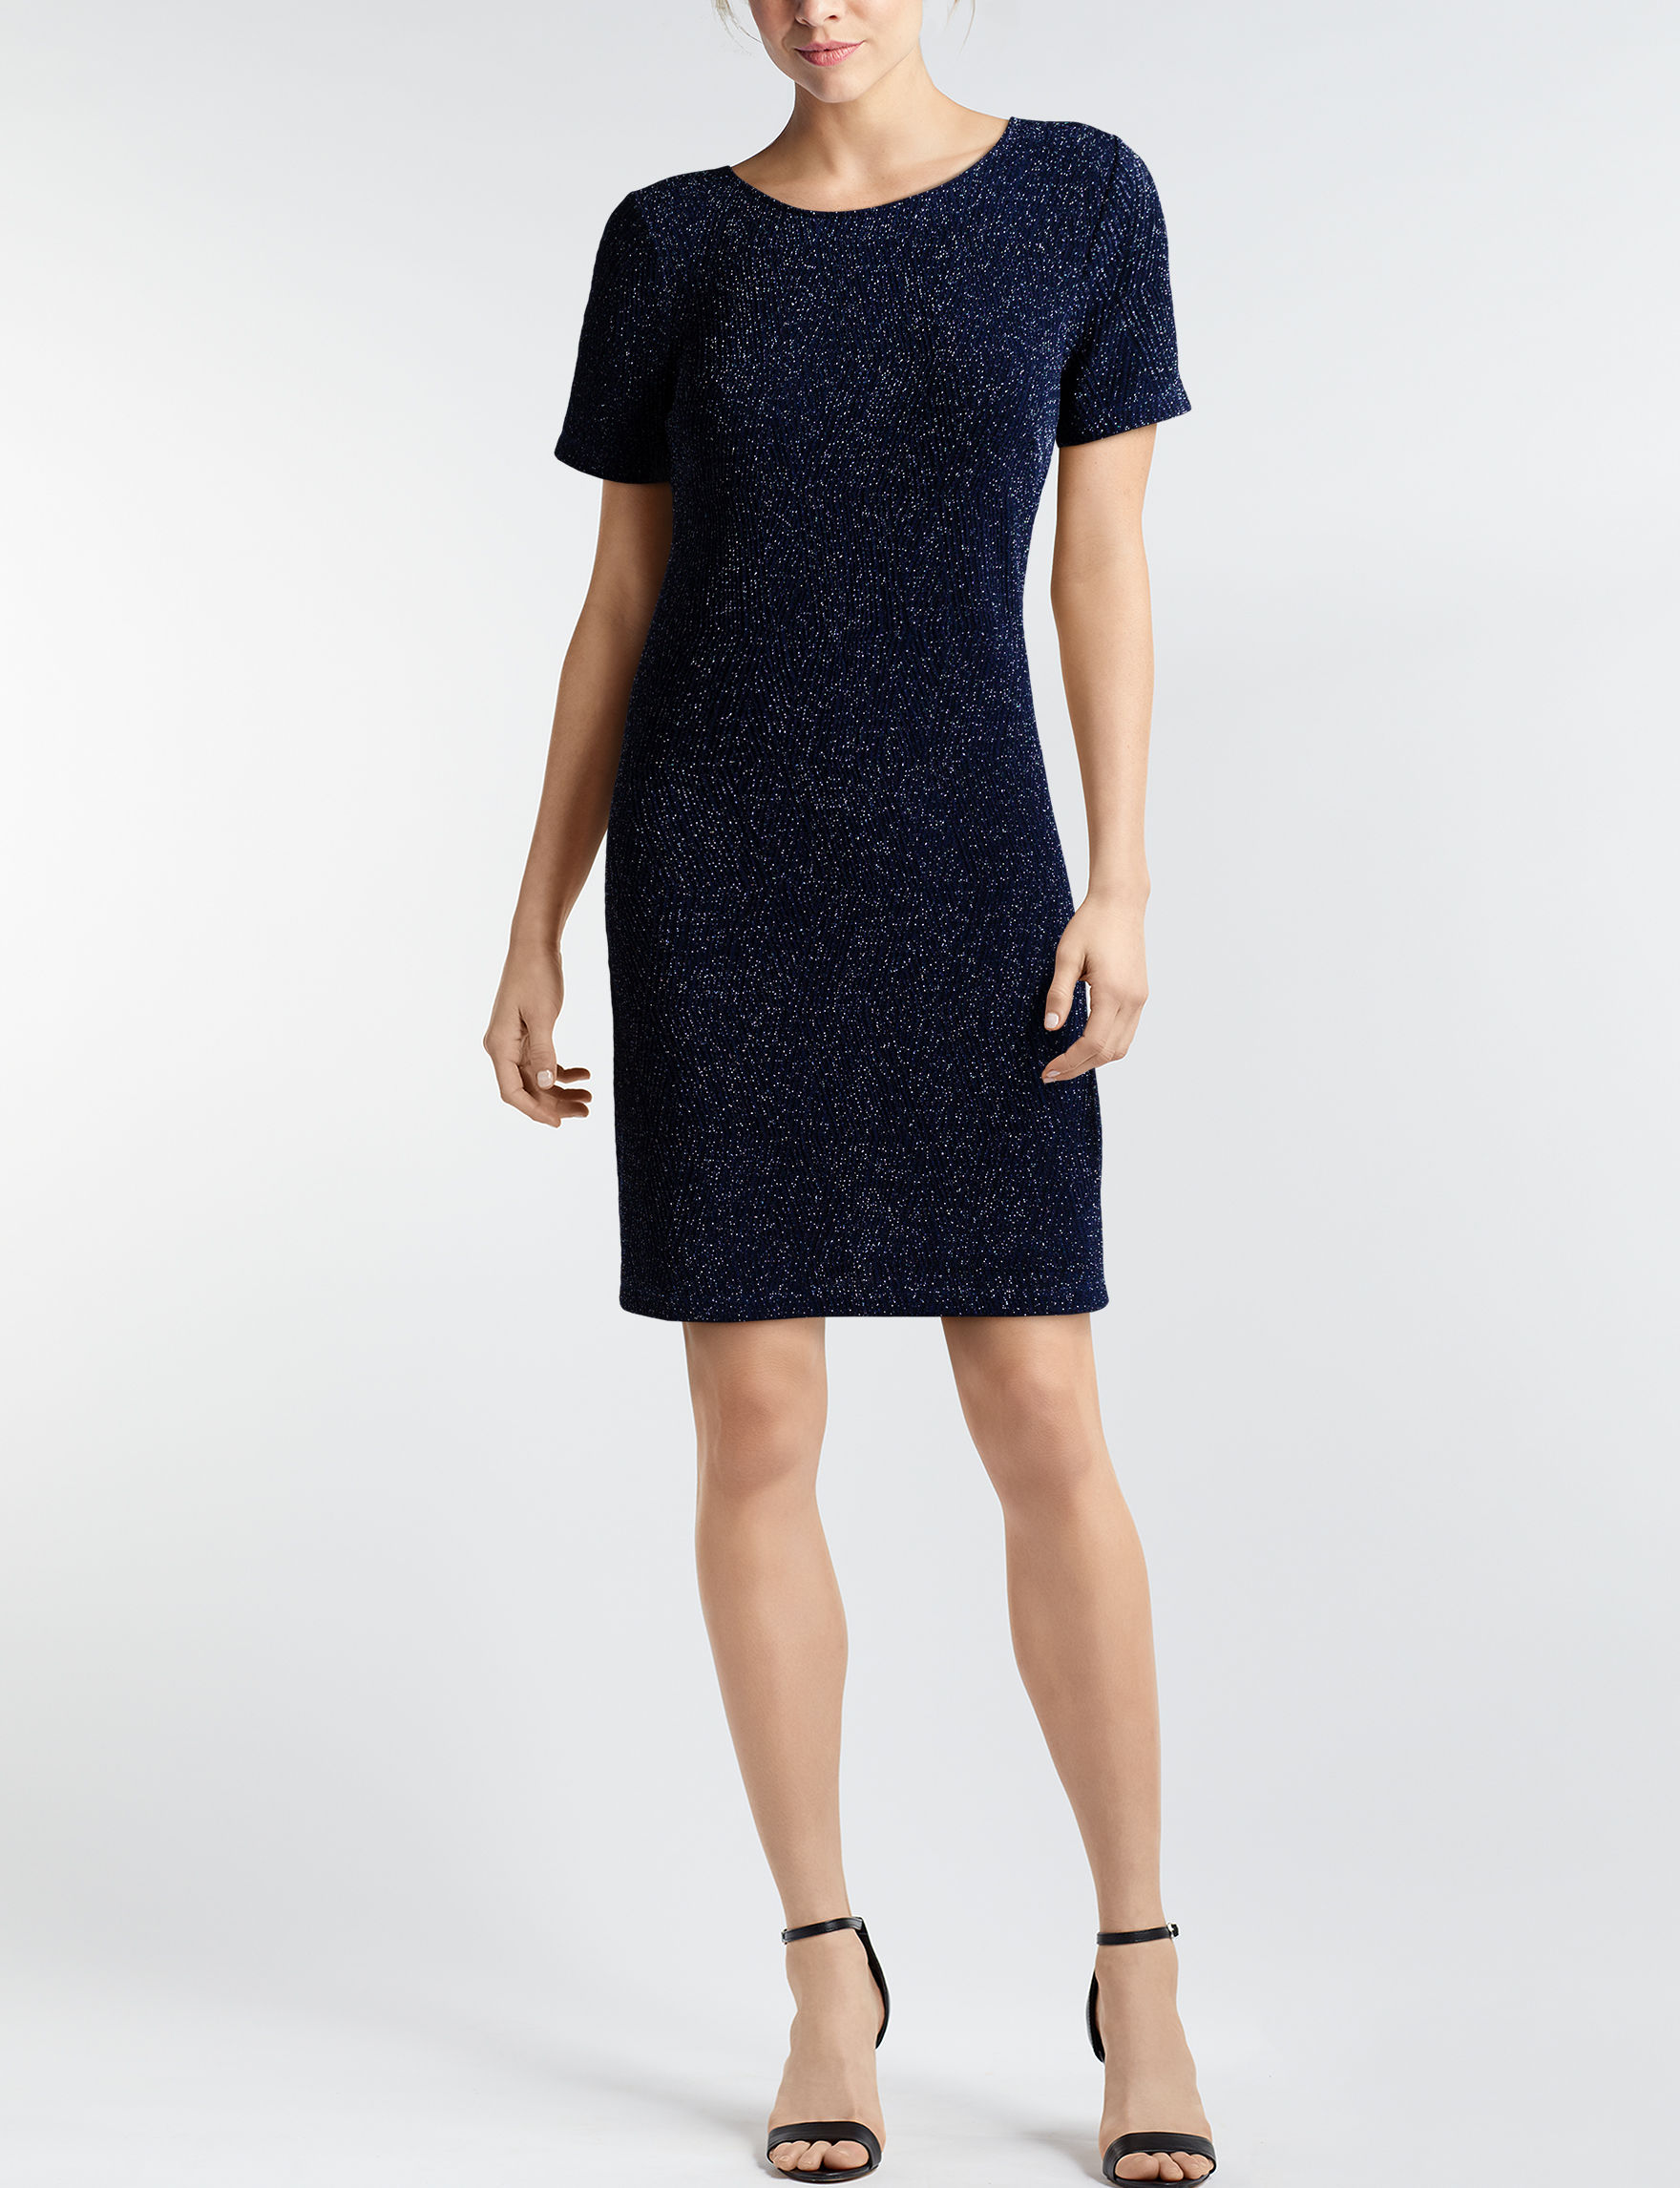 Trixxi Navy Evening & Formal Everyday & Casual Shift Dresses